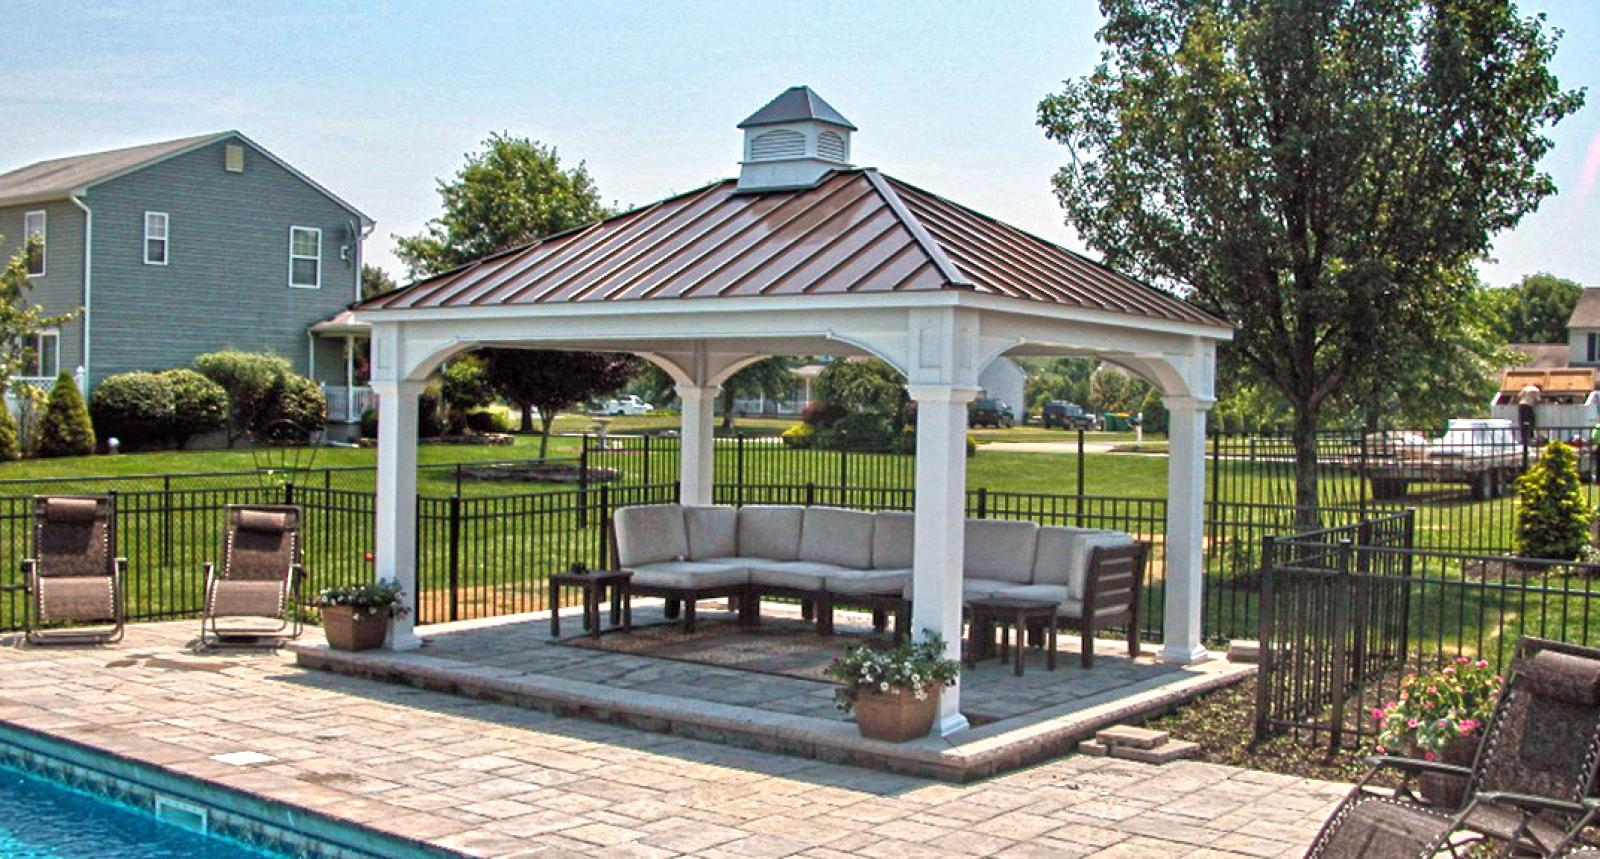 Outdoor Pavilion Plans That Offer a Pleasant Relaxing Time ... on Outdoor Patio Pavilion id=22996